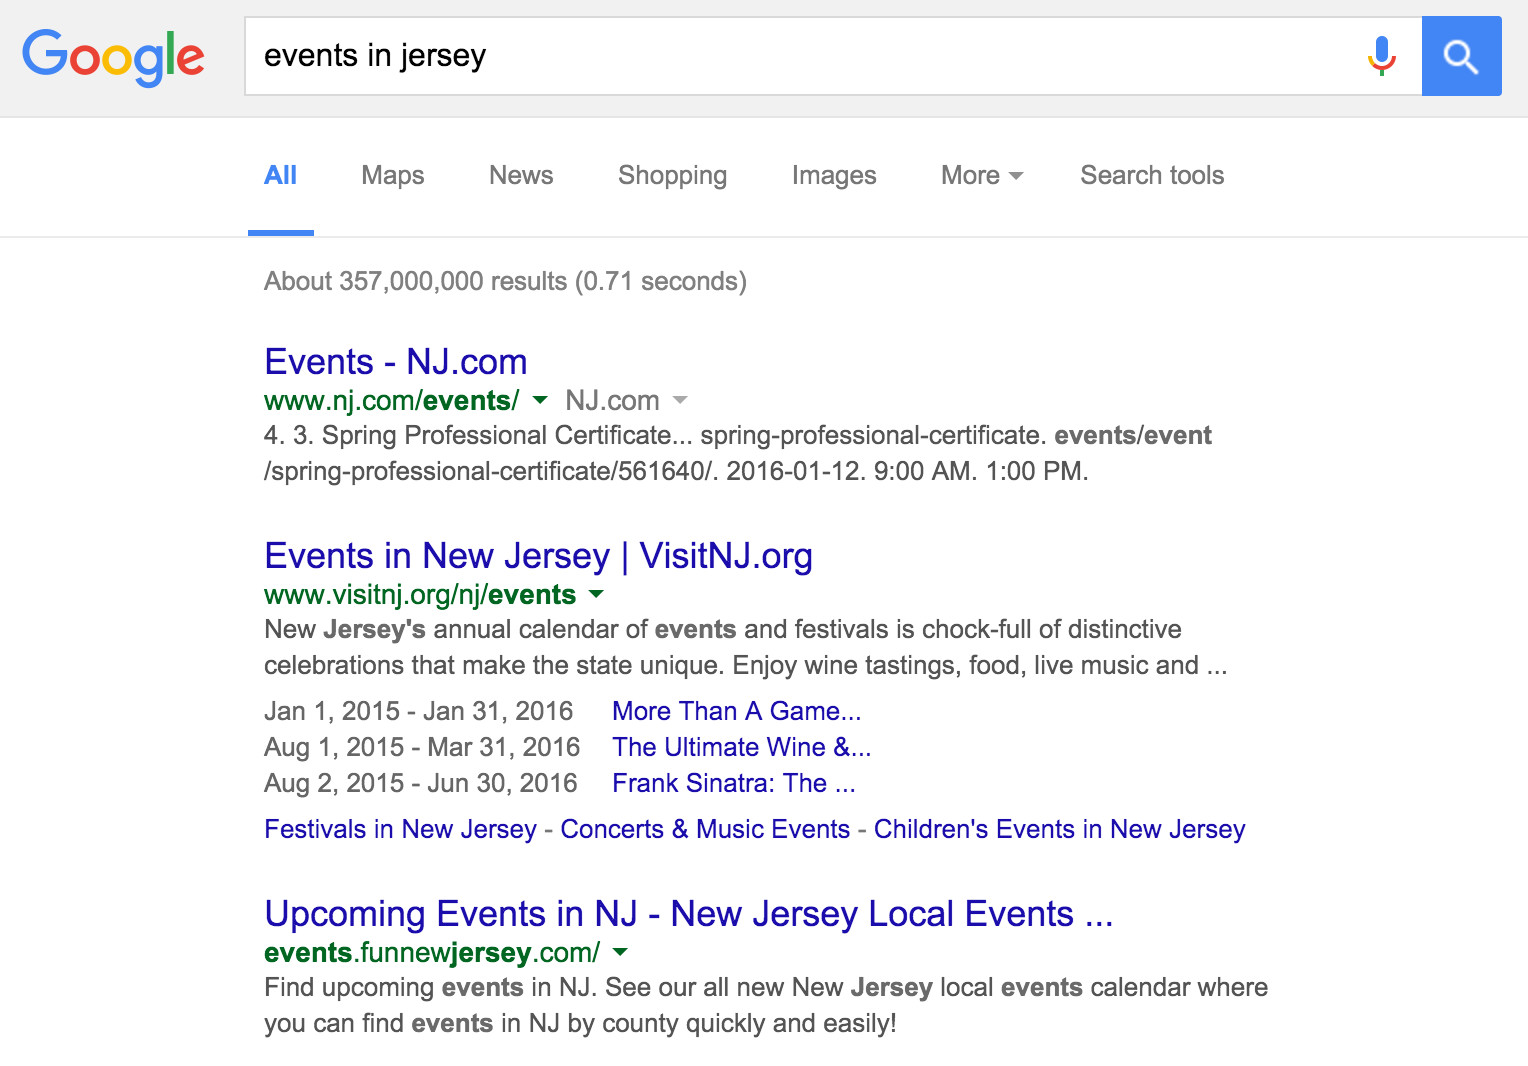 events in jersey on google.com, Non Localised Results